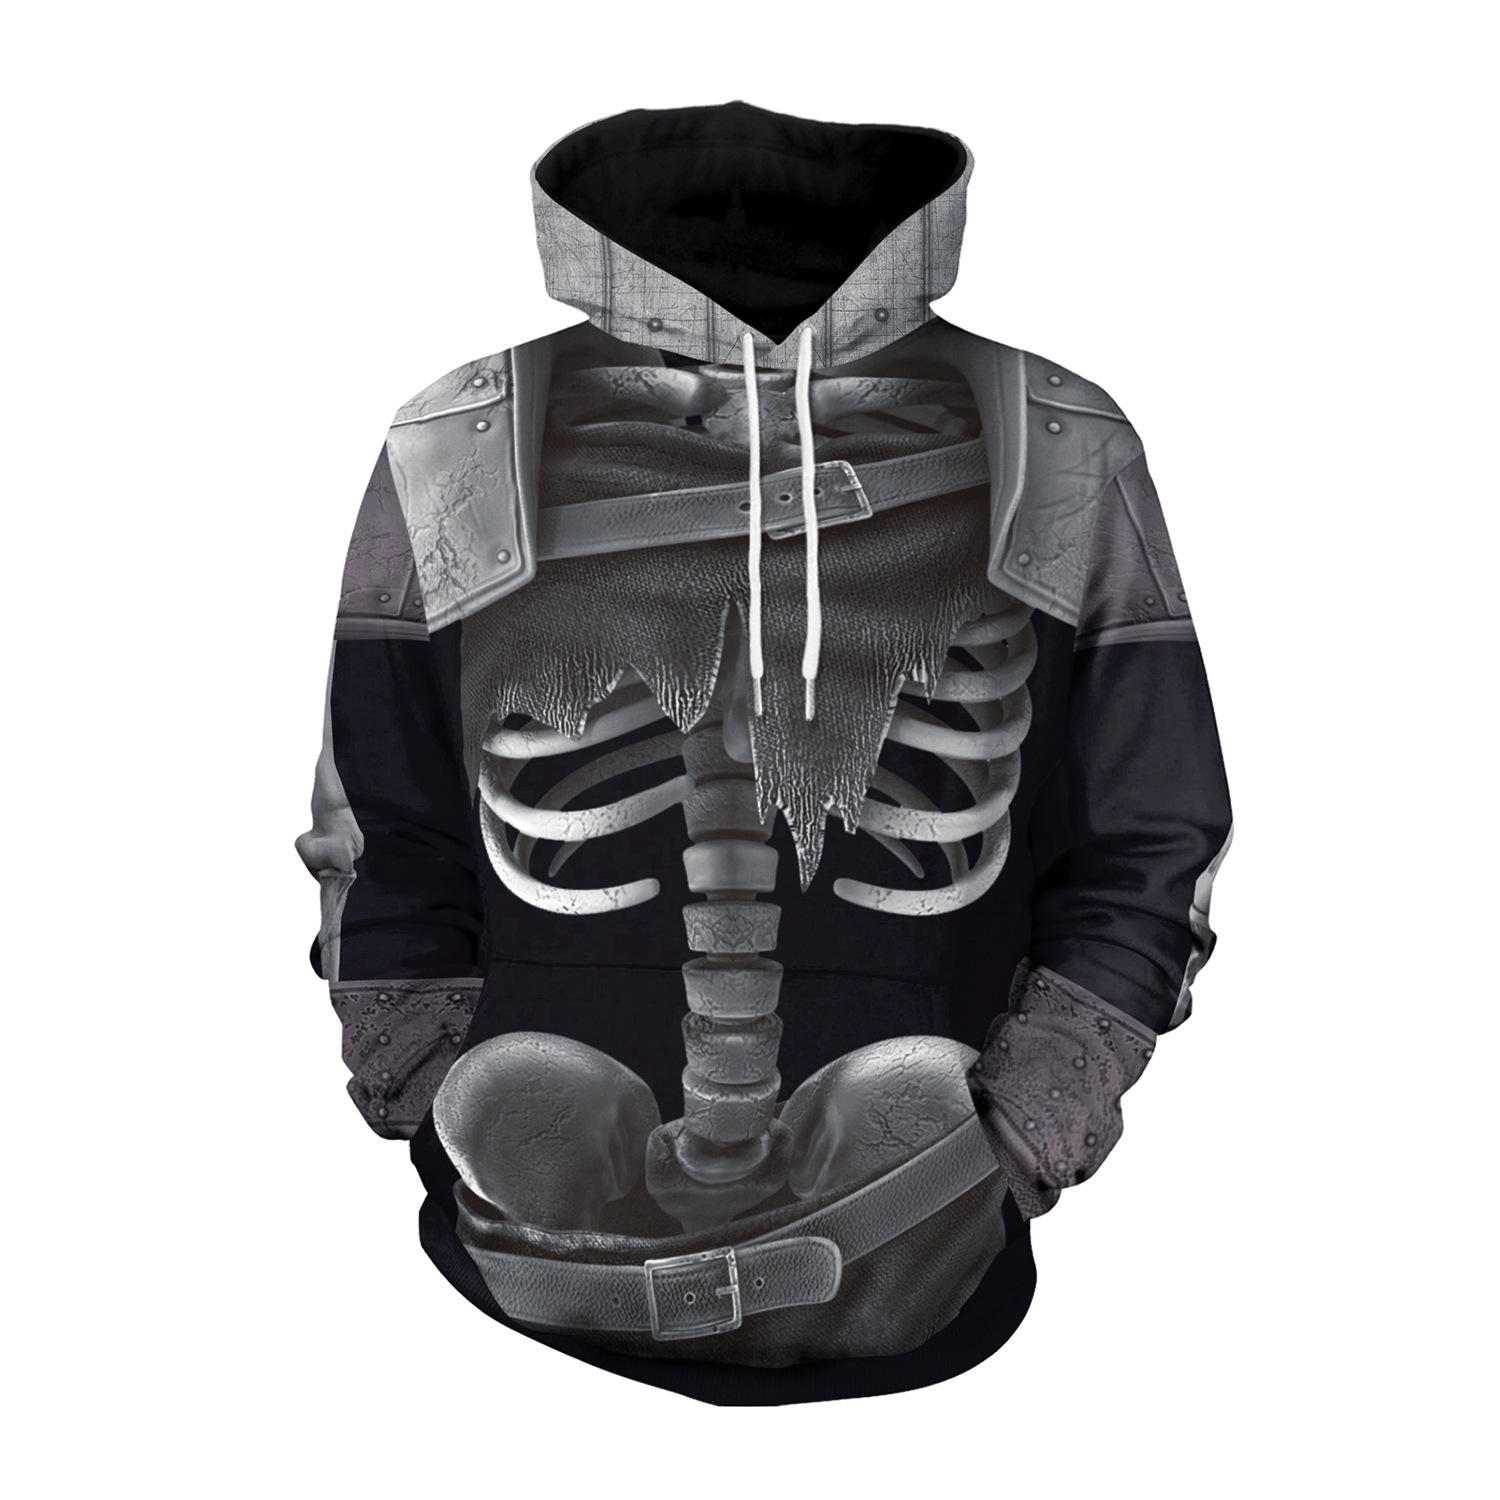 Cross Border Supply Of Goods Halloween Europe And America Hot Sales Fortnite COS Skeleton 3D Digital Printing Hoodie WB101-025